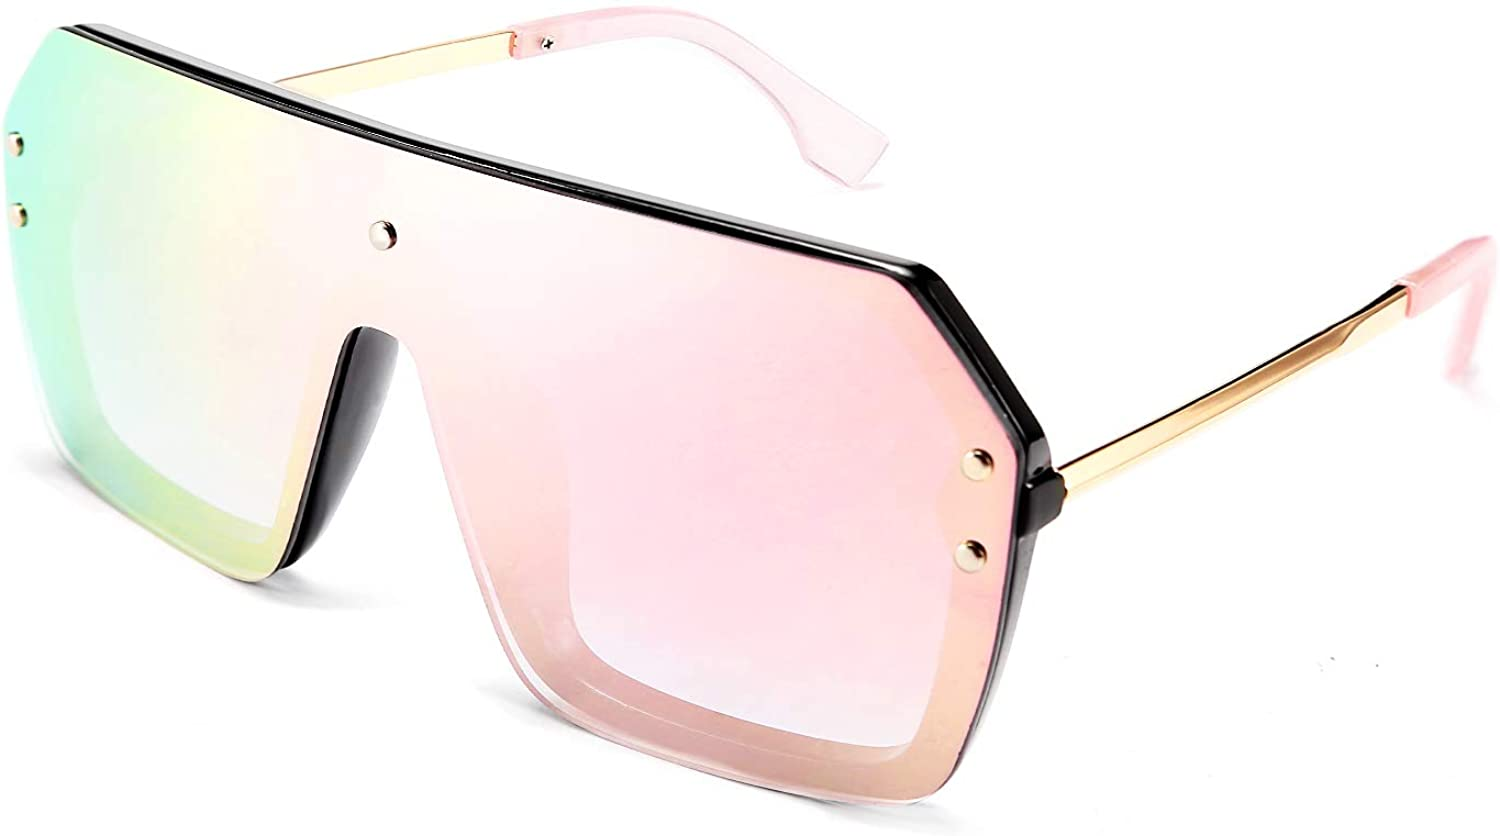 FEISEDY Classic Siamese One Piece Sunglasses Nice Rimless Stylish Retro Design for Women Men B2574